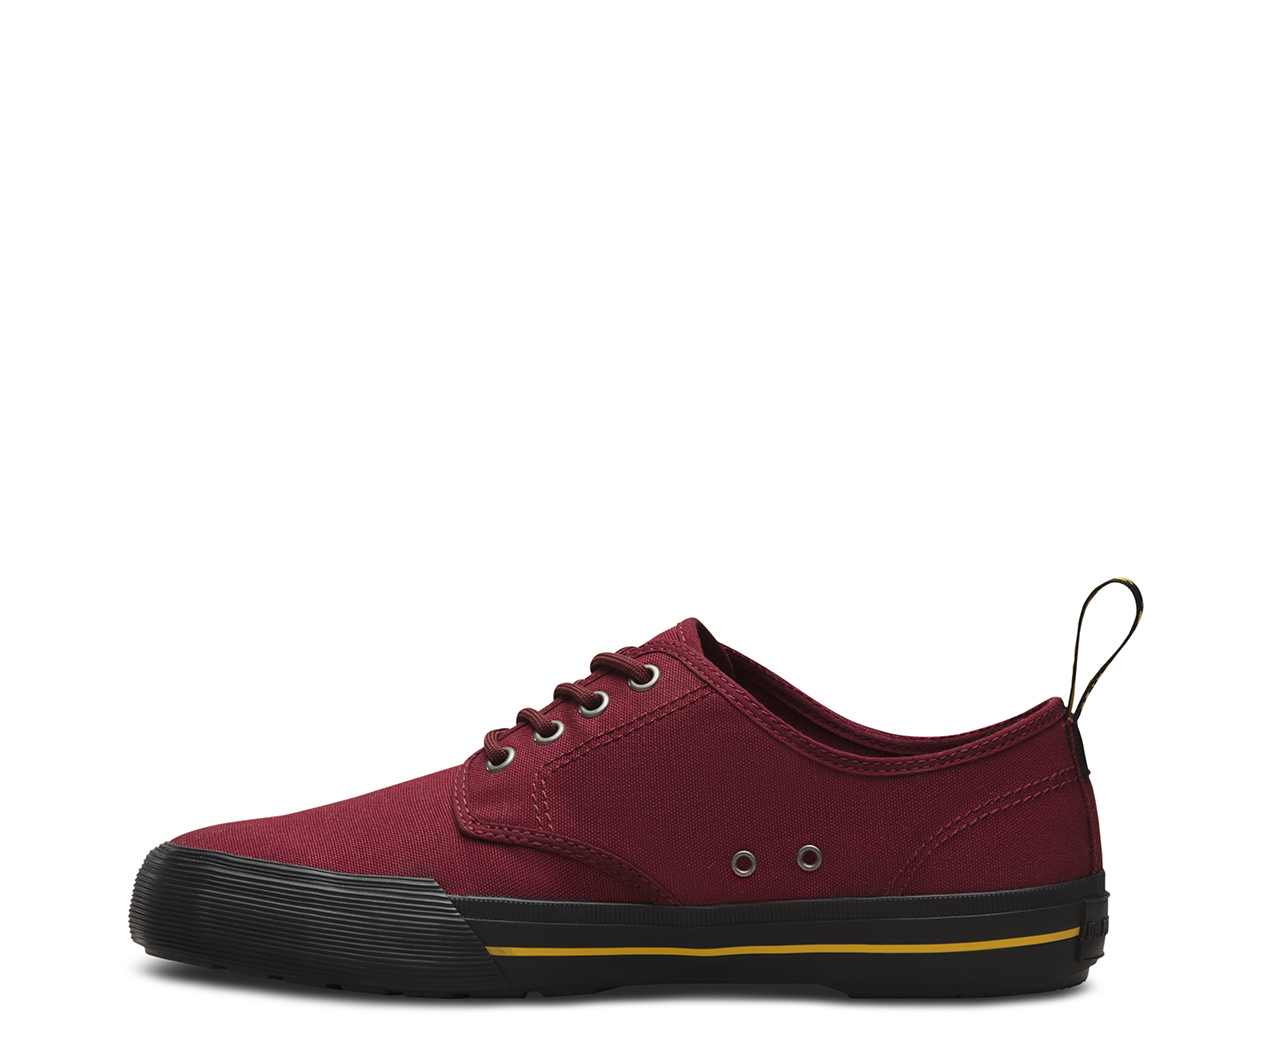 Black canvas 'Pressler' plimsolls supply for sale amazing price cheap online discount codes clearance store Y1BM0